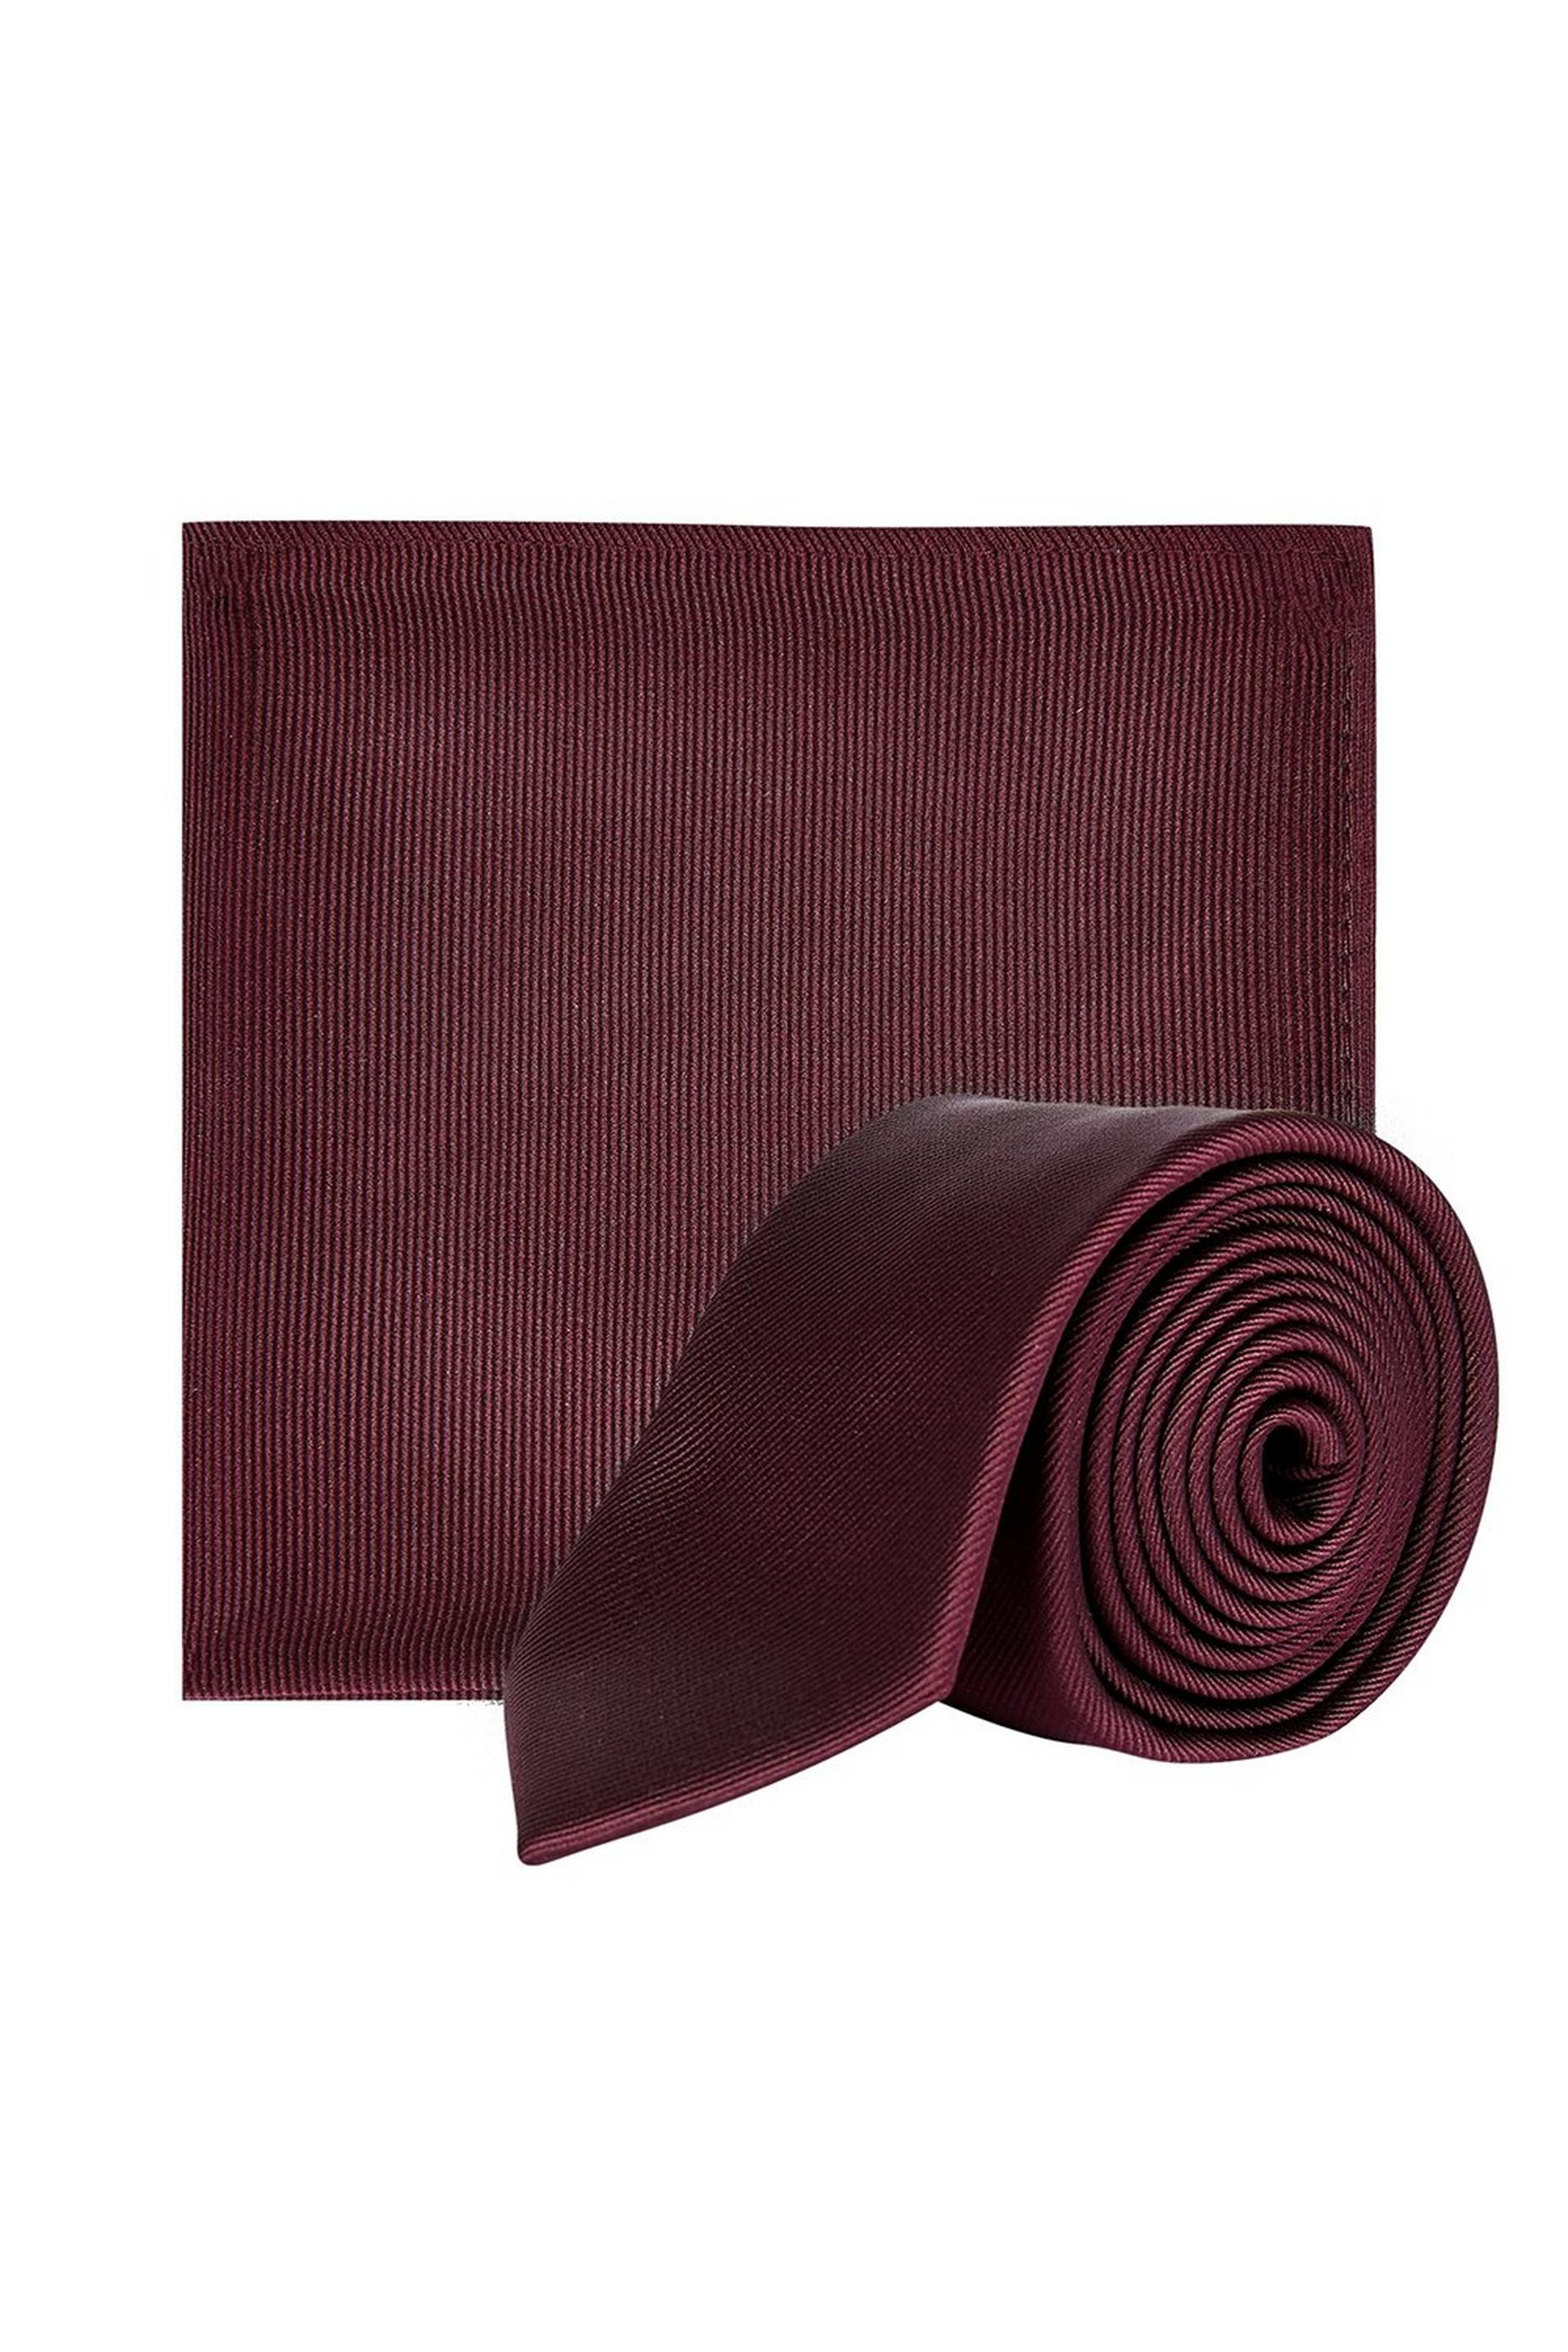 Dark Burgundy Tie set